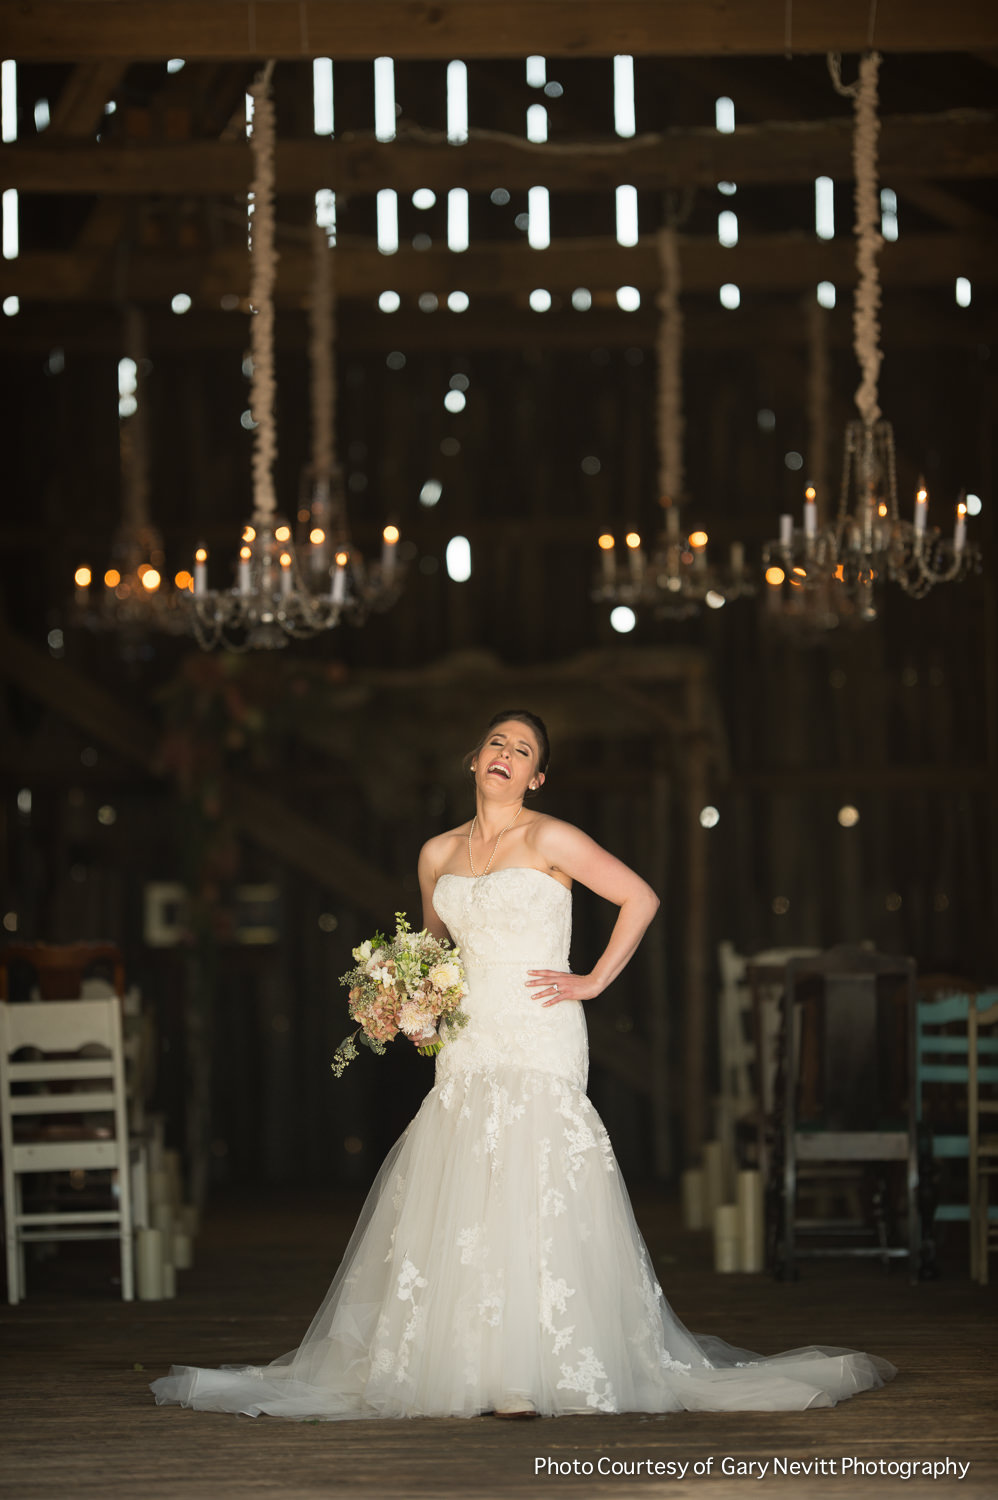 88 Barn Wedding Chandeliers Mismatched Chairs Custom Birch Chuppah.jpg